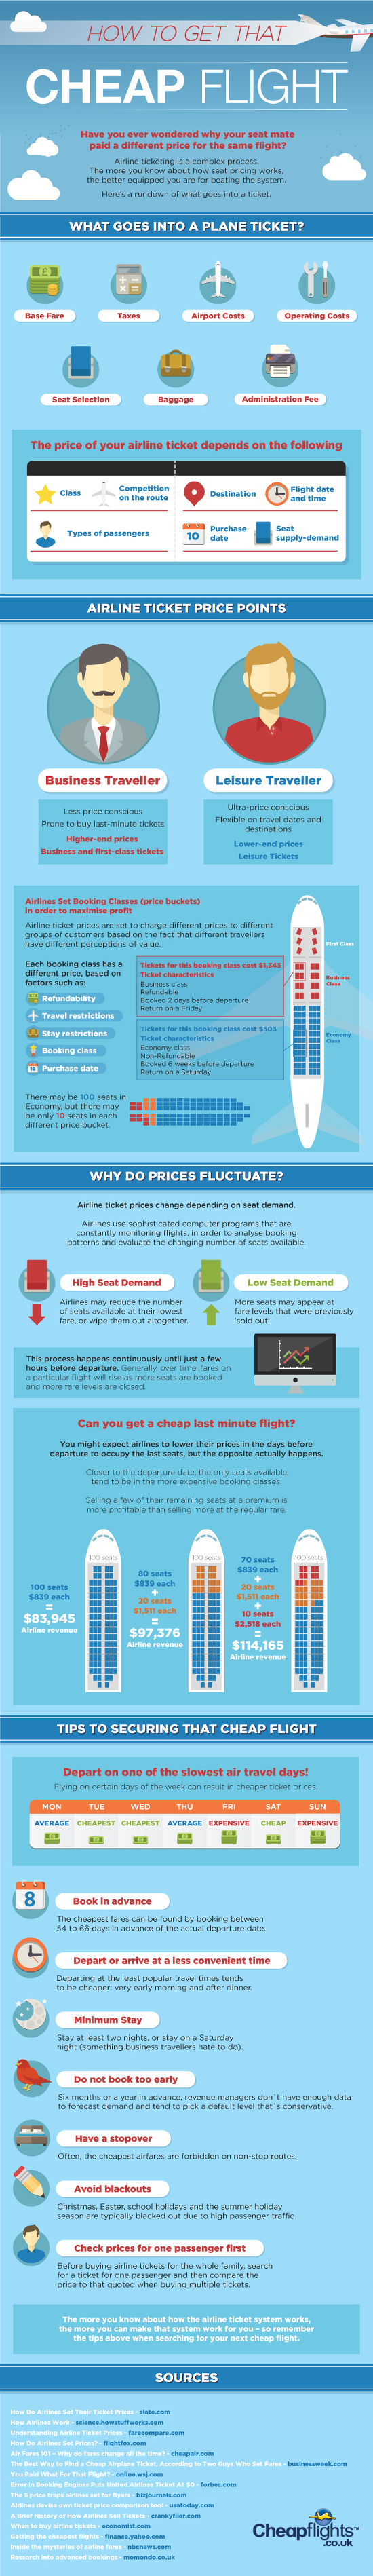 How to get cheap flights Infographic